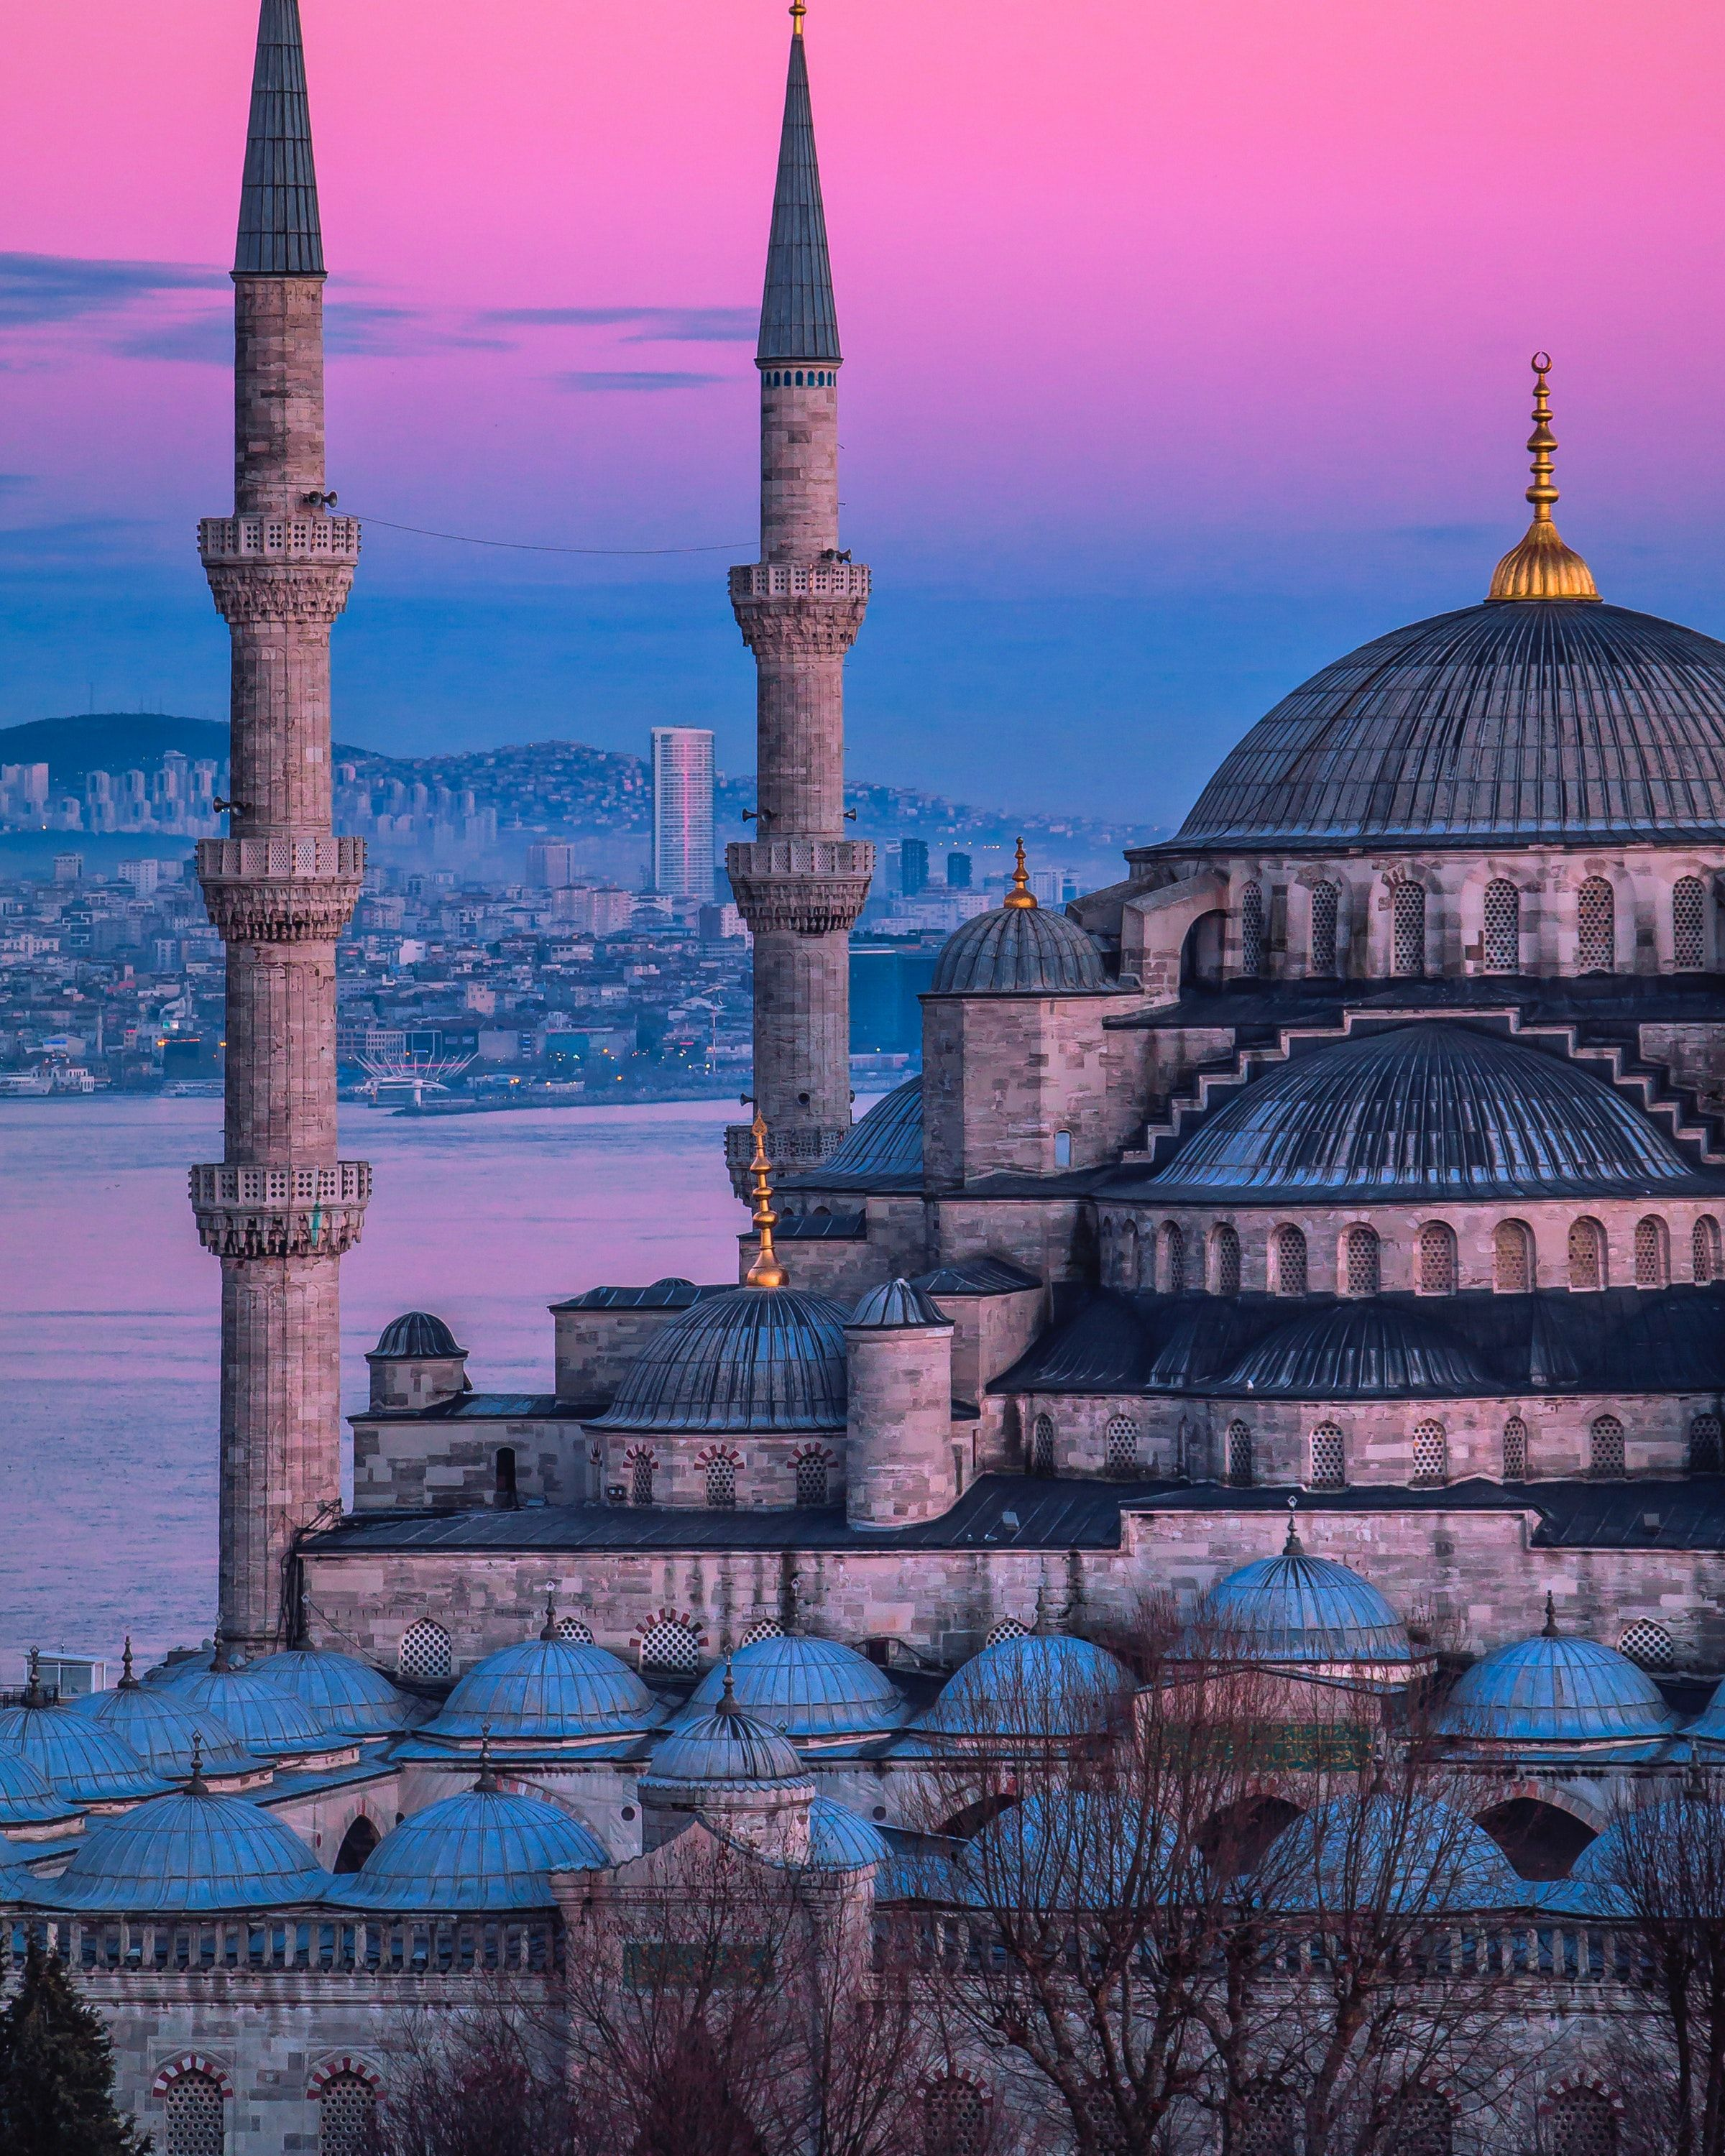 Places Istanbul Mosque Cami Wallpapers Hd 4k Background For